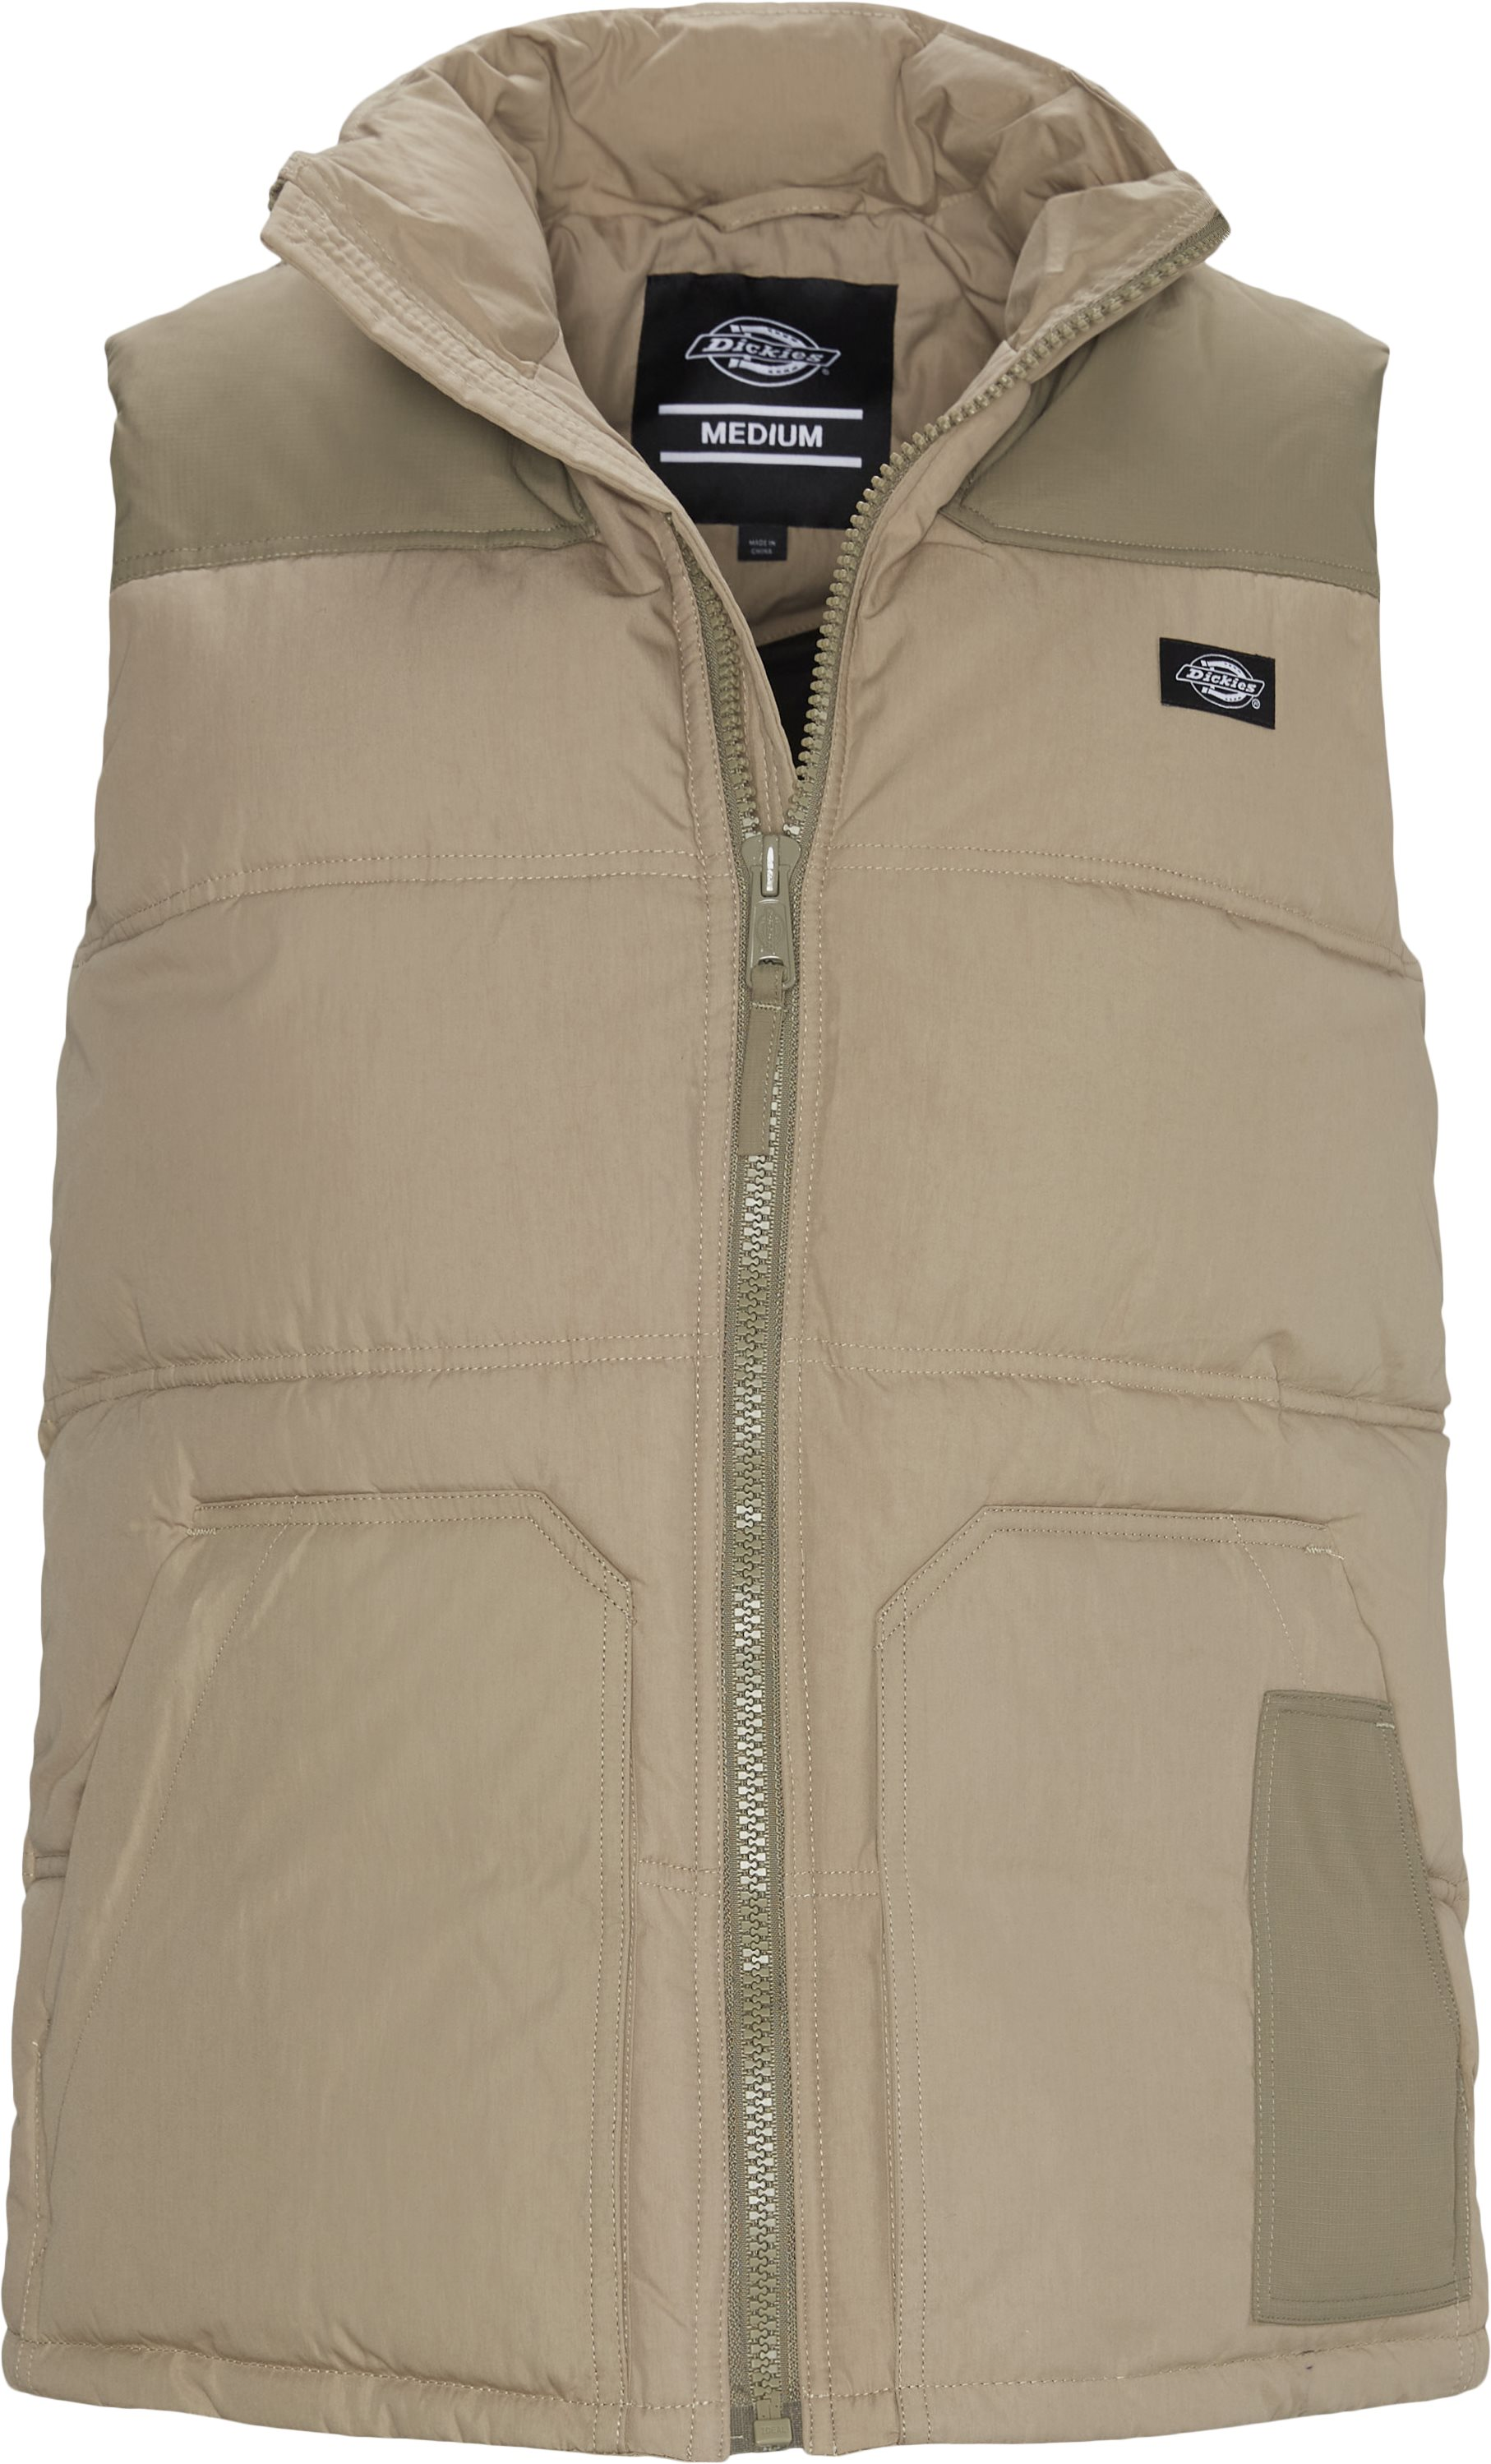 Lockport Vest - Veste - Regular - Sand